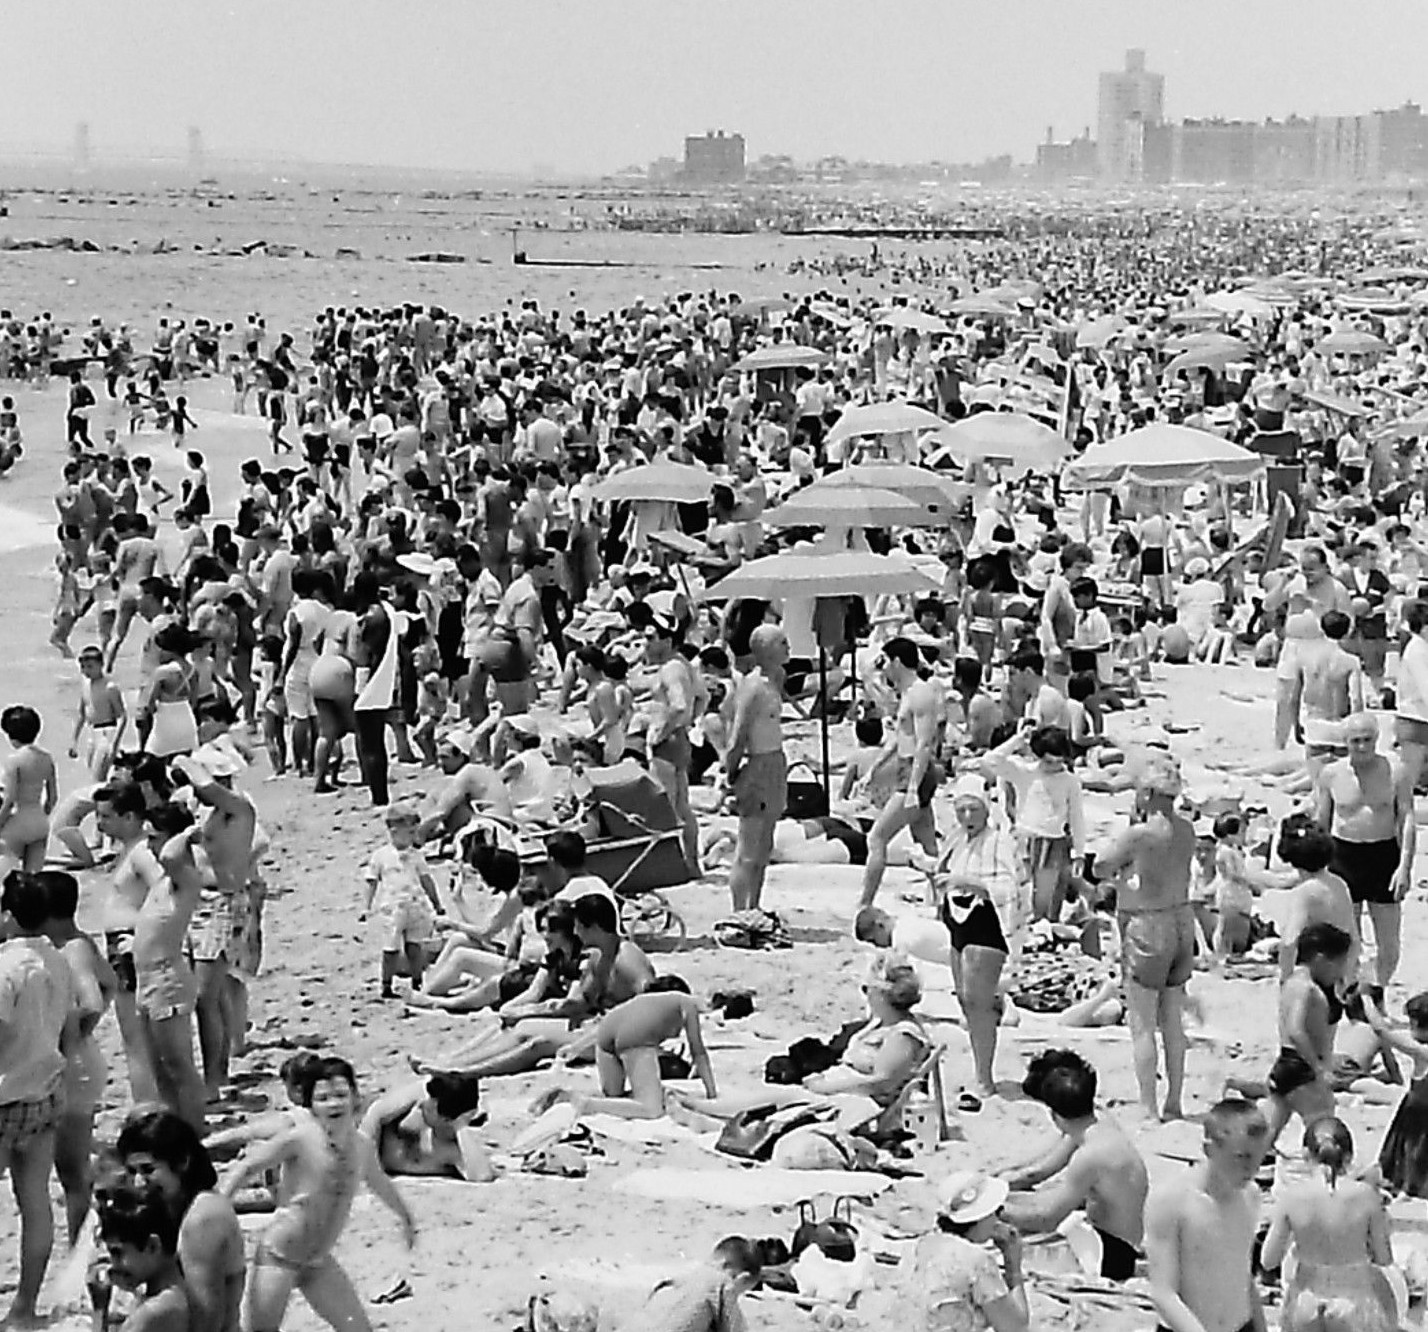 Island Beach People: Coney Island Beach Crowds From July 4's Of The Past